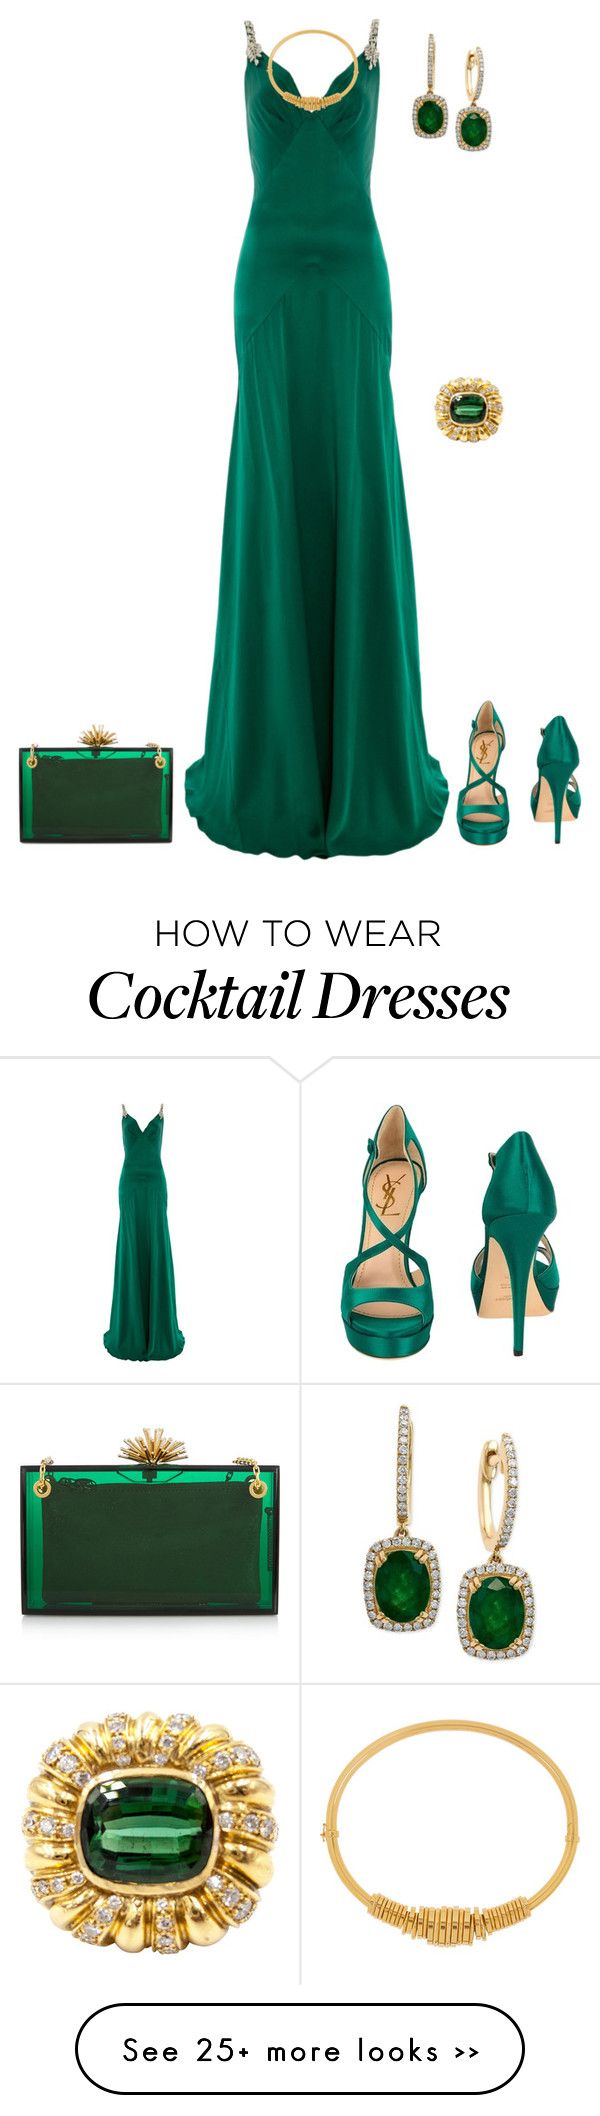 """outfit 2367"" by natalyag on Polyvore featuring Temperley London, Yves Saint Laurent, Effy Jewelry, Charlotte Olympia and Chloé"